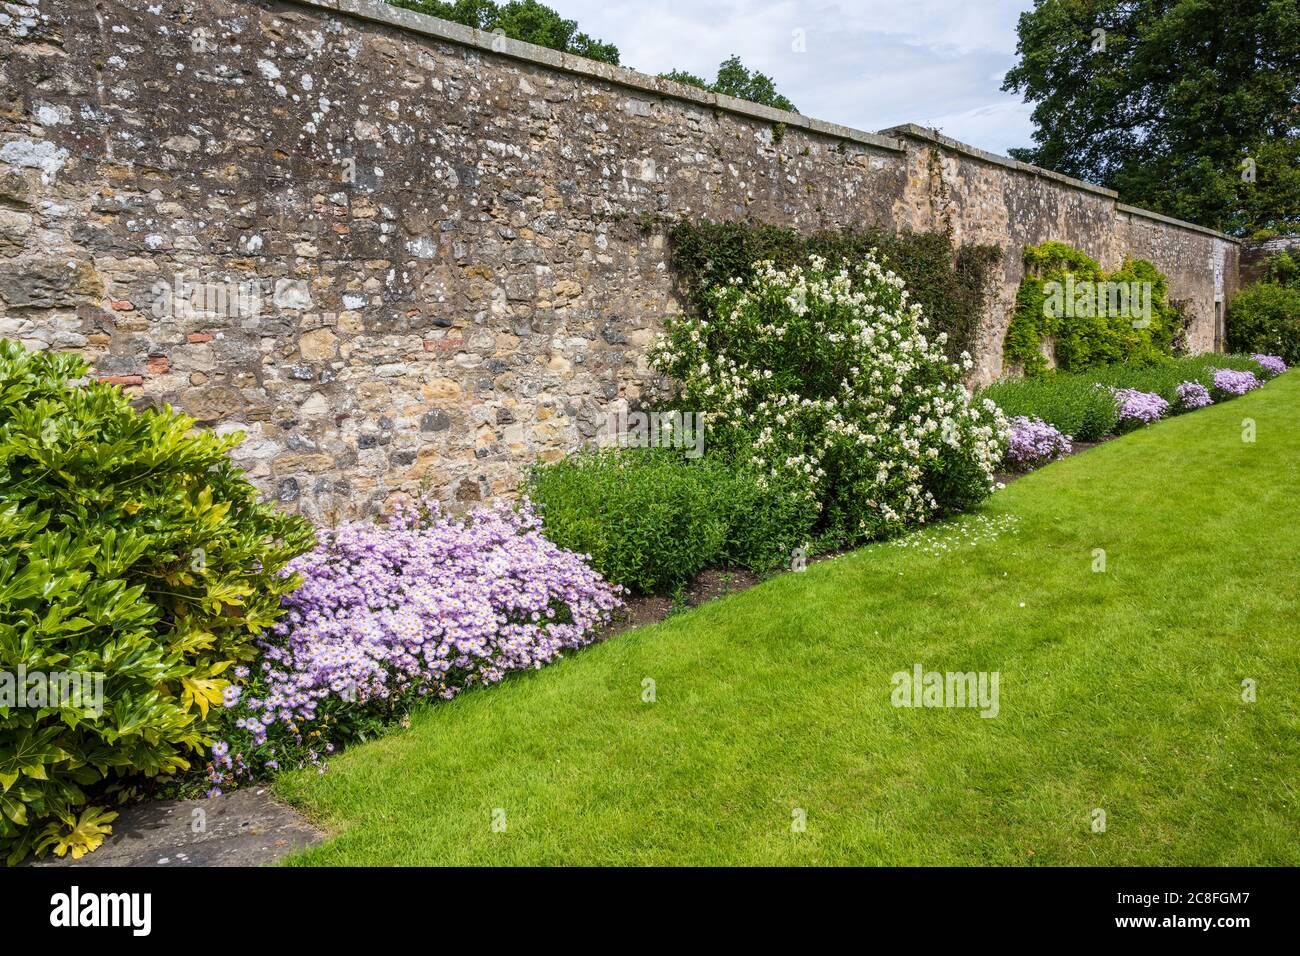 Walled Garden at Falkland Palace in village of Falkland in Fife, Scotland, UK Stock Photo